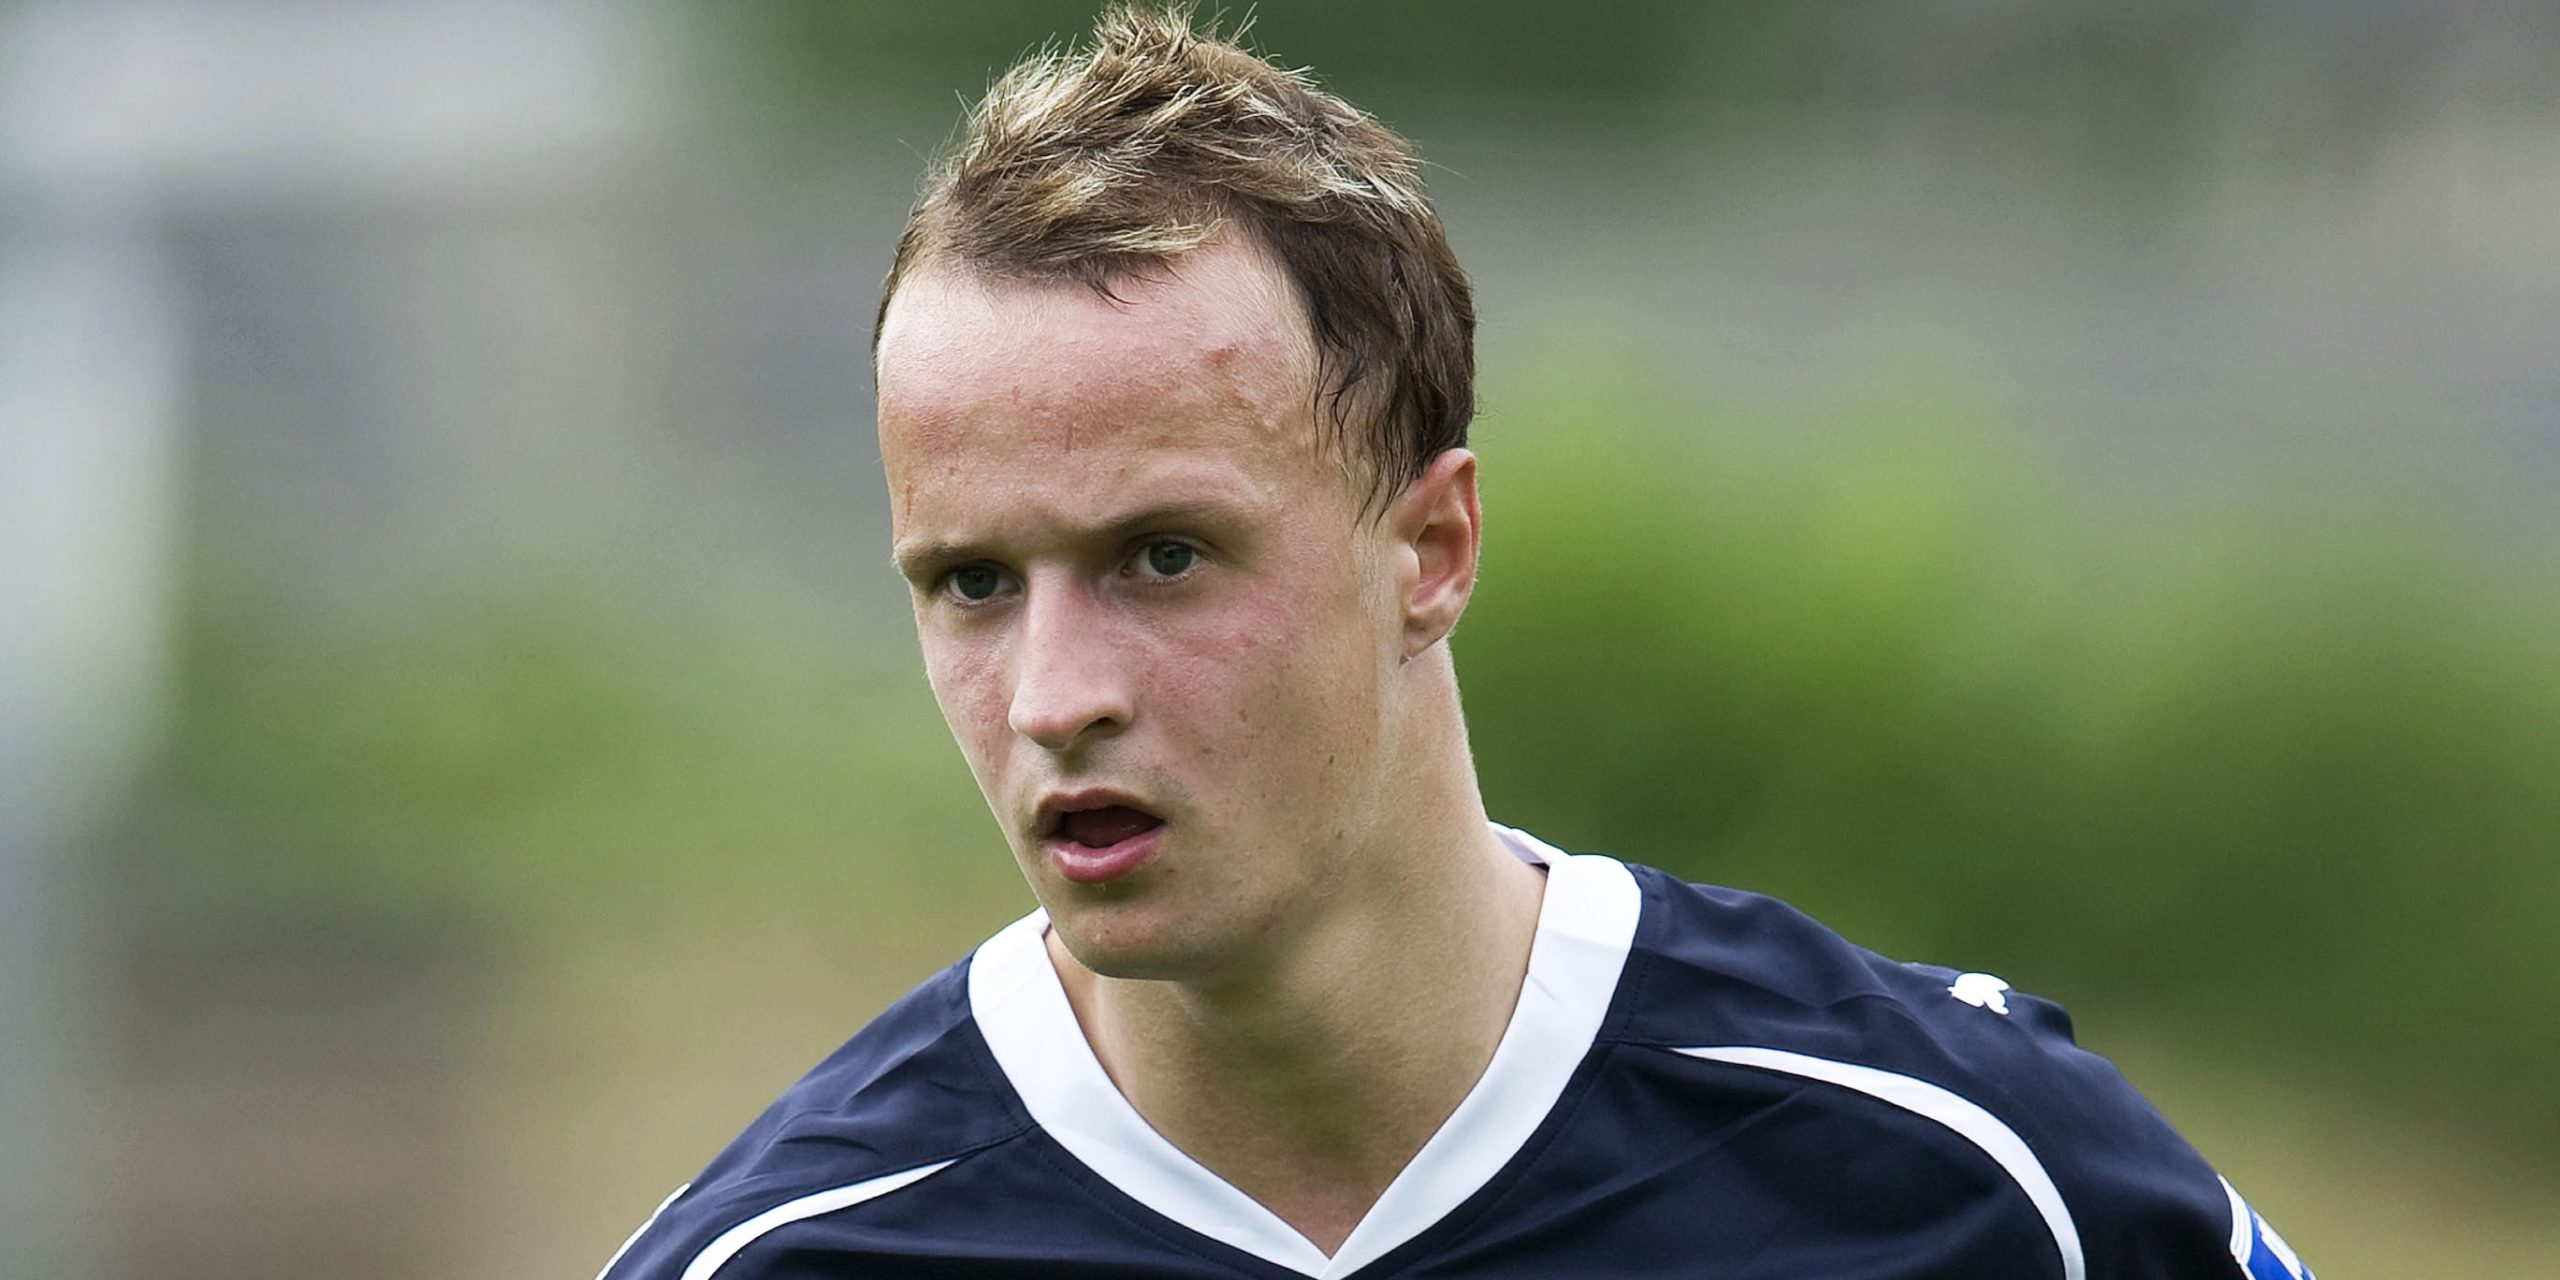 Leigh Griffiths was a goal-scoring success at Dundee